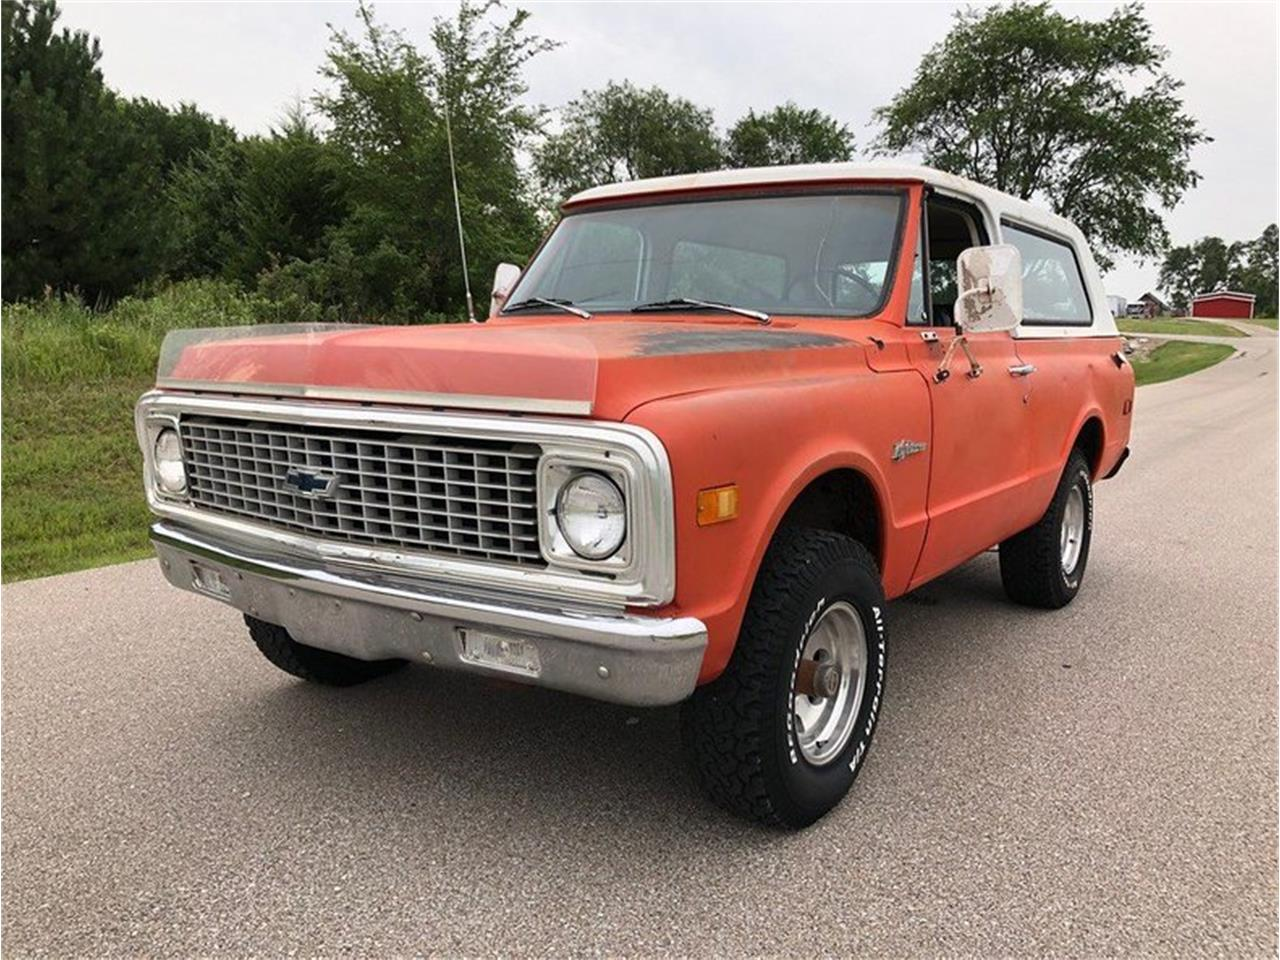 1972 Chevrolet Blazer for sale in Lincoln, NE – photo 7